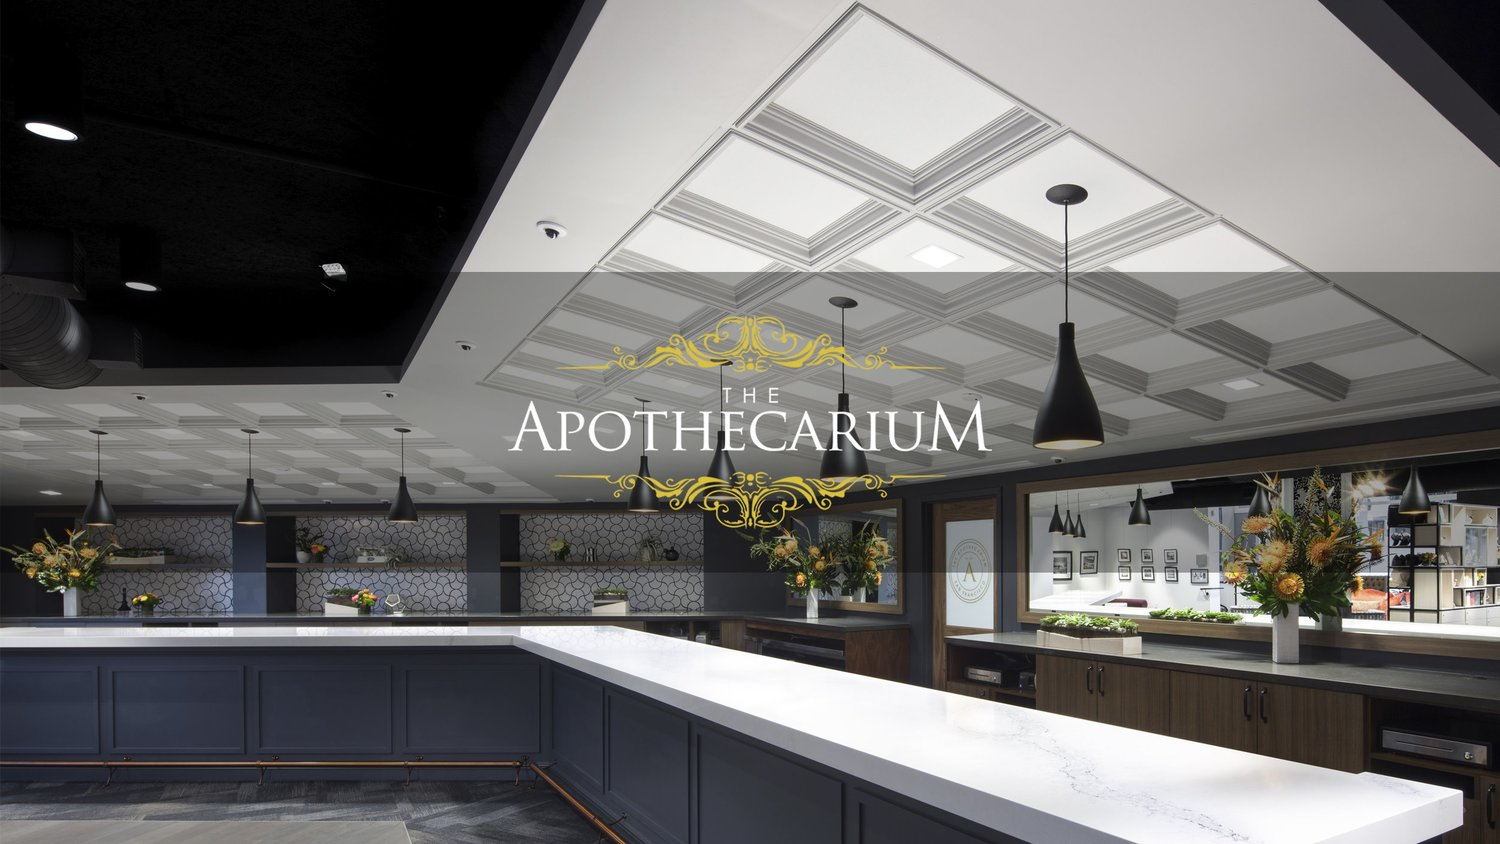 LV Menu/Order — The Apothecarium